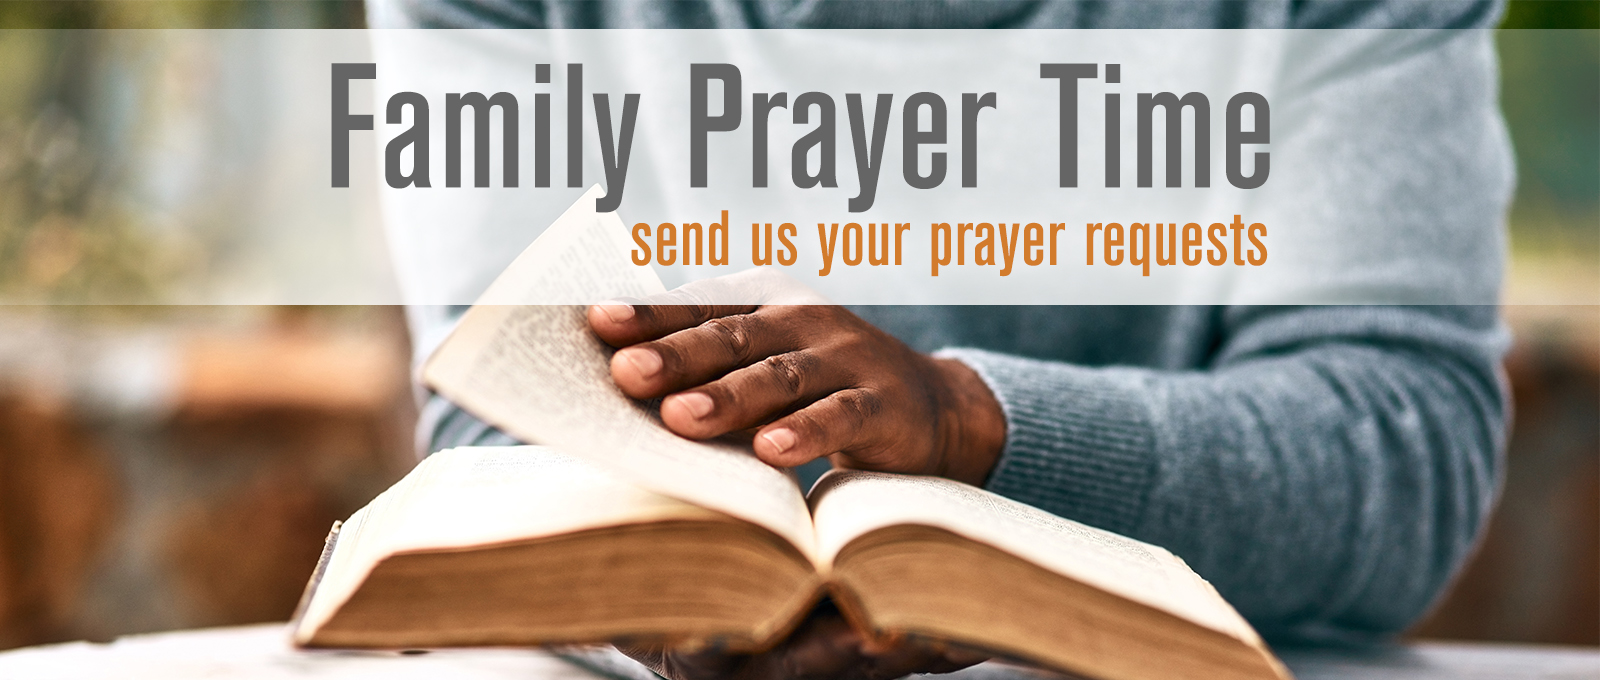 Family Prayer Time